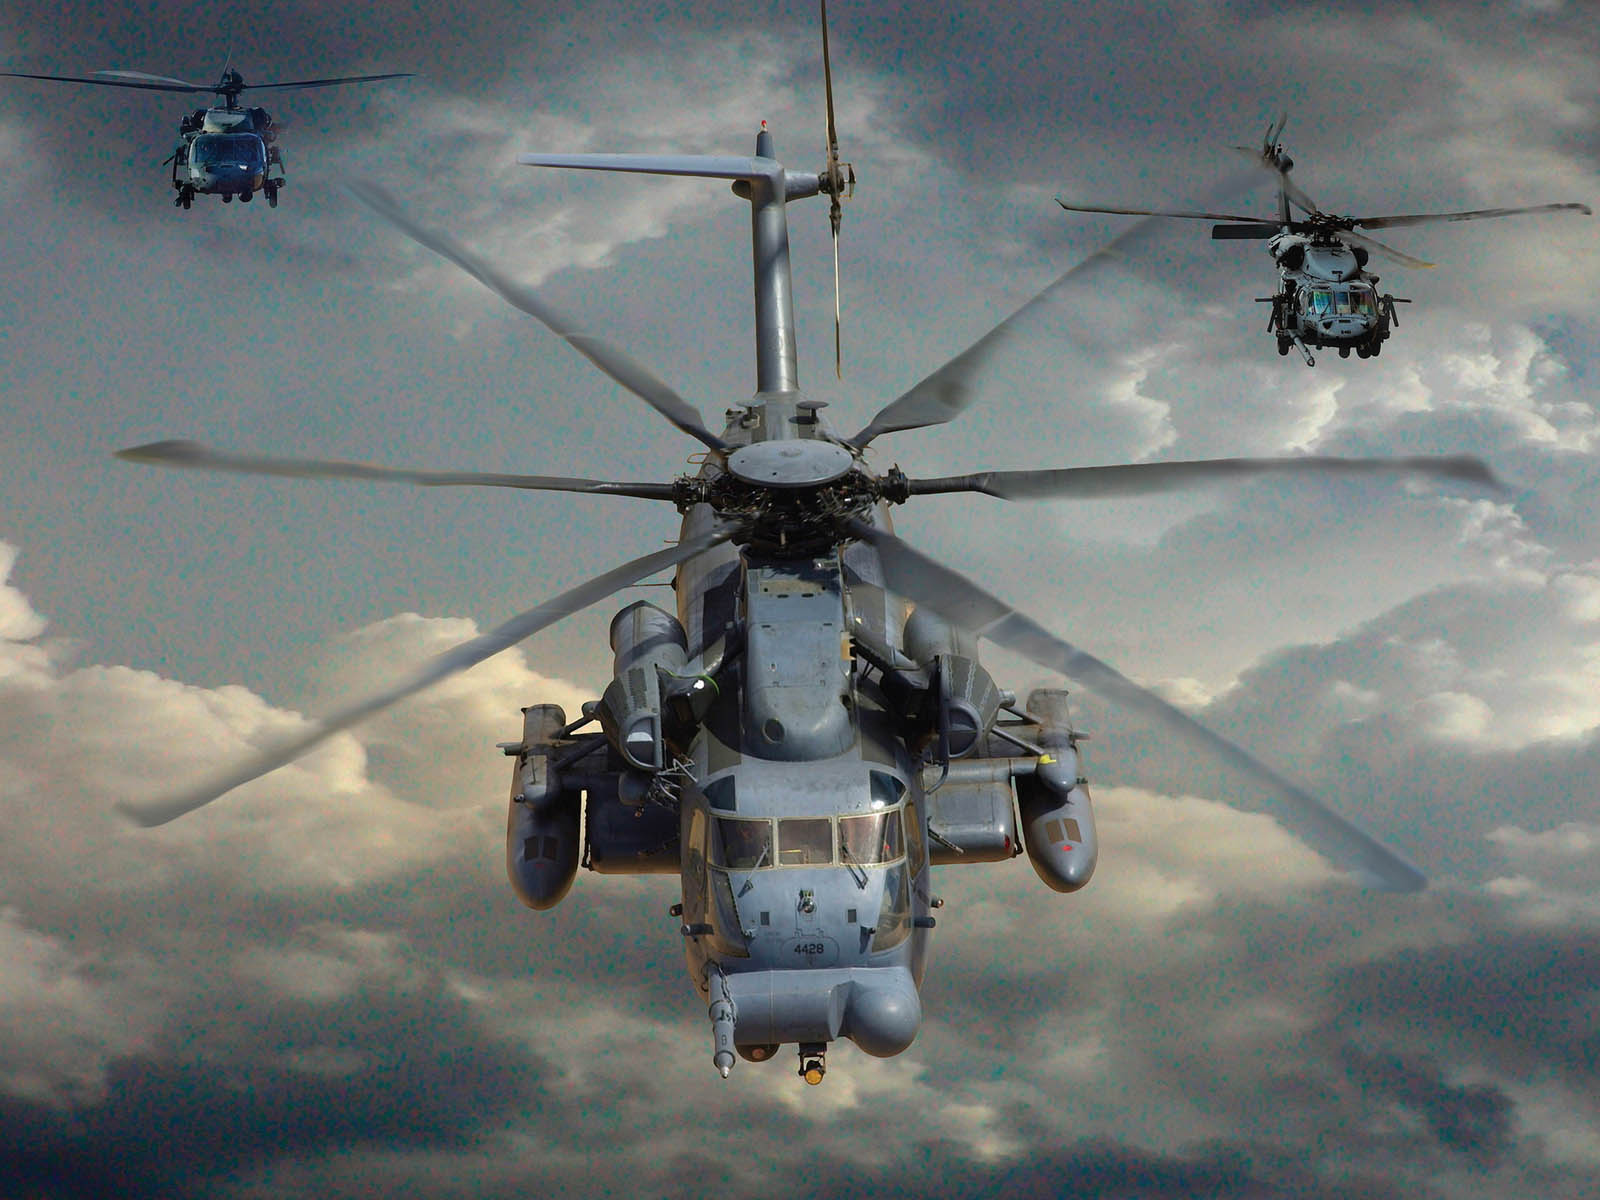 Download Cars Wallpapers For Windows Xp Wallpapers Mh 53 Pave Low Helicopter Wallpapers